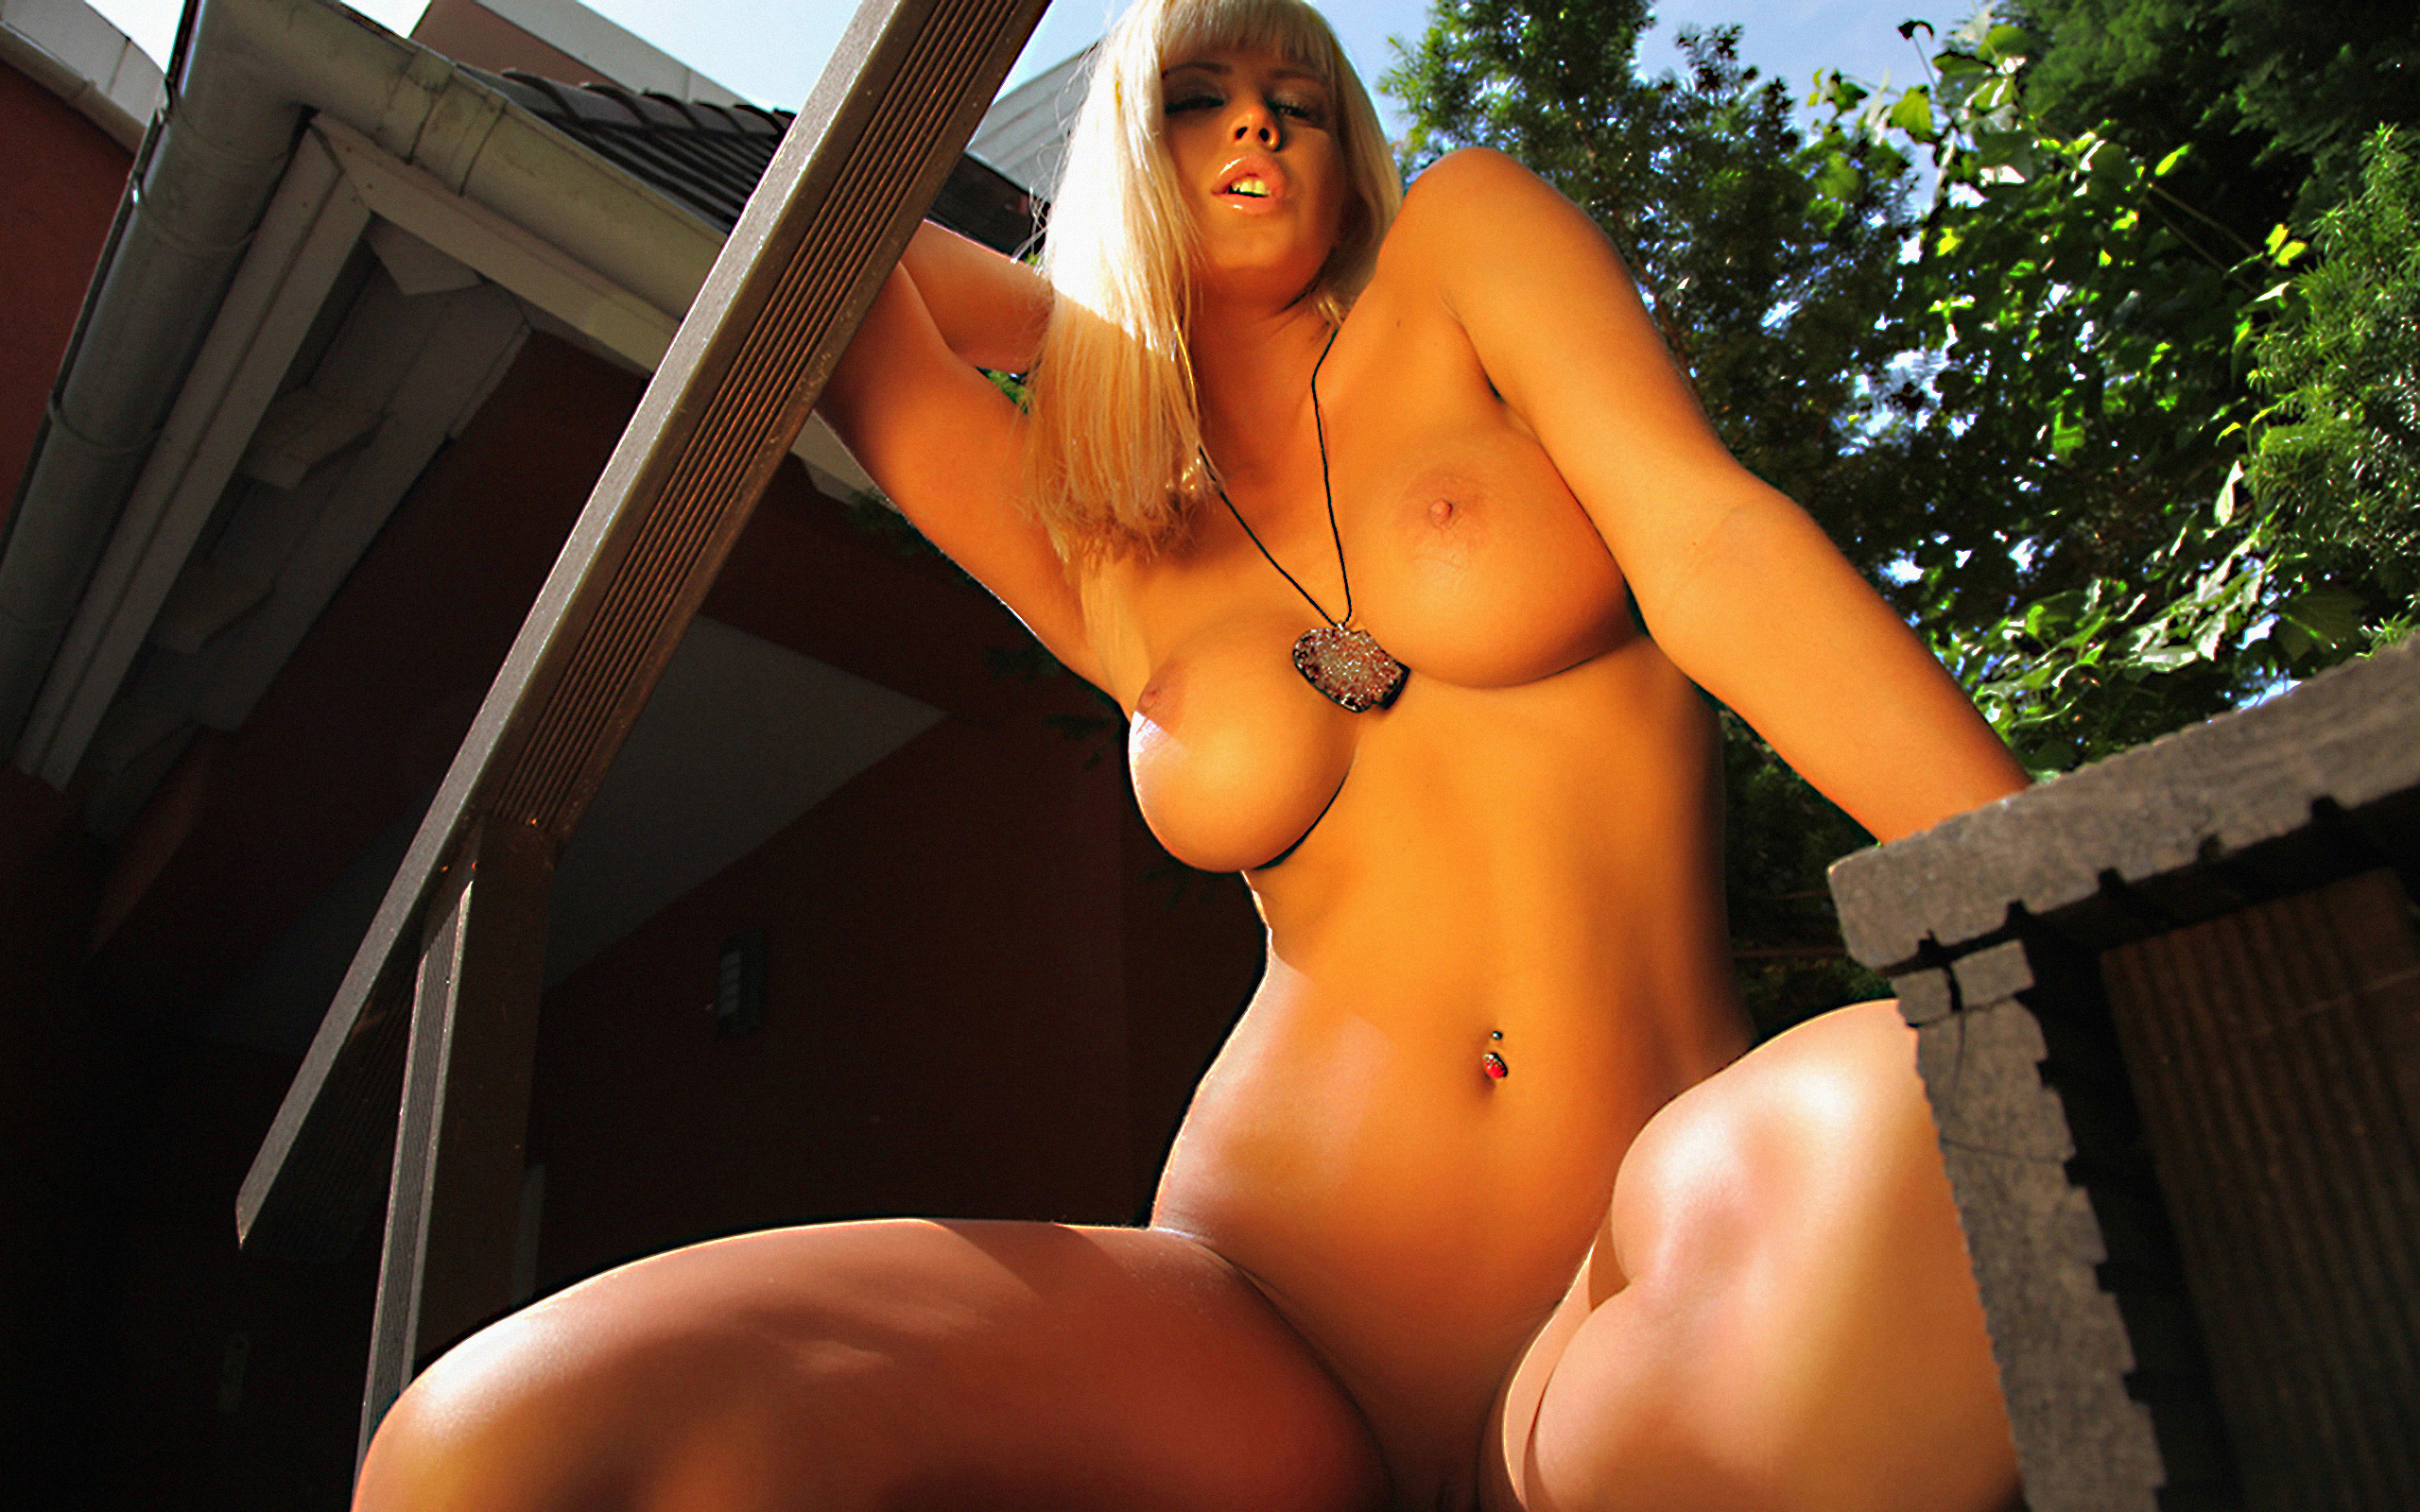 Wallpaper Amy, Big Tits, Blonde, Gorgeous, Hot, Hanging -7871